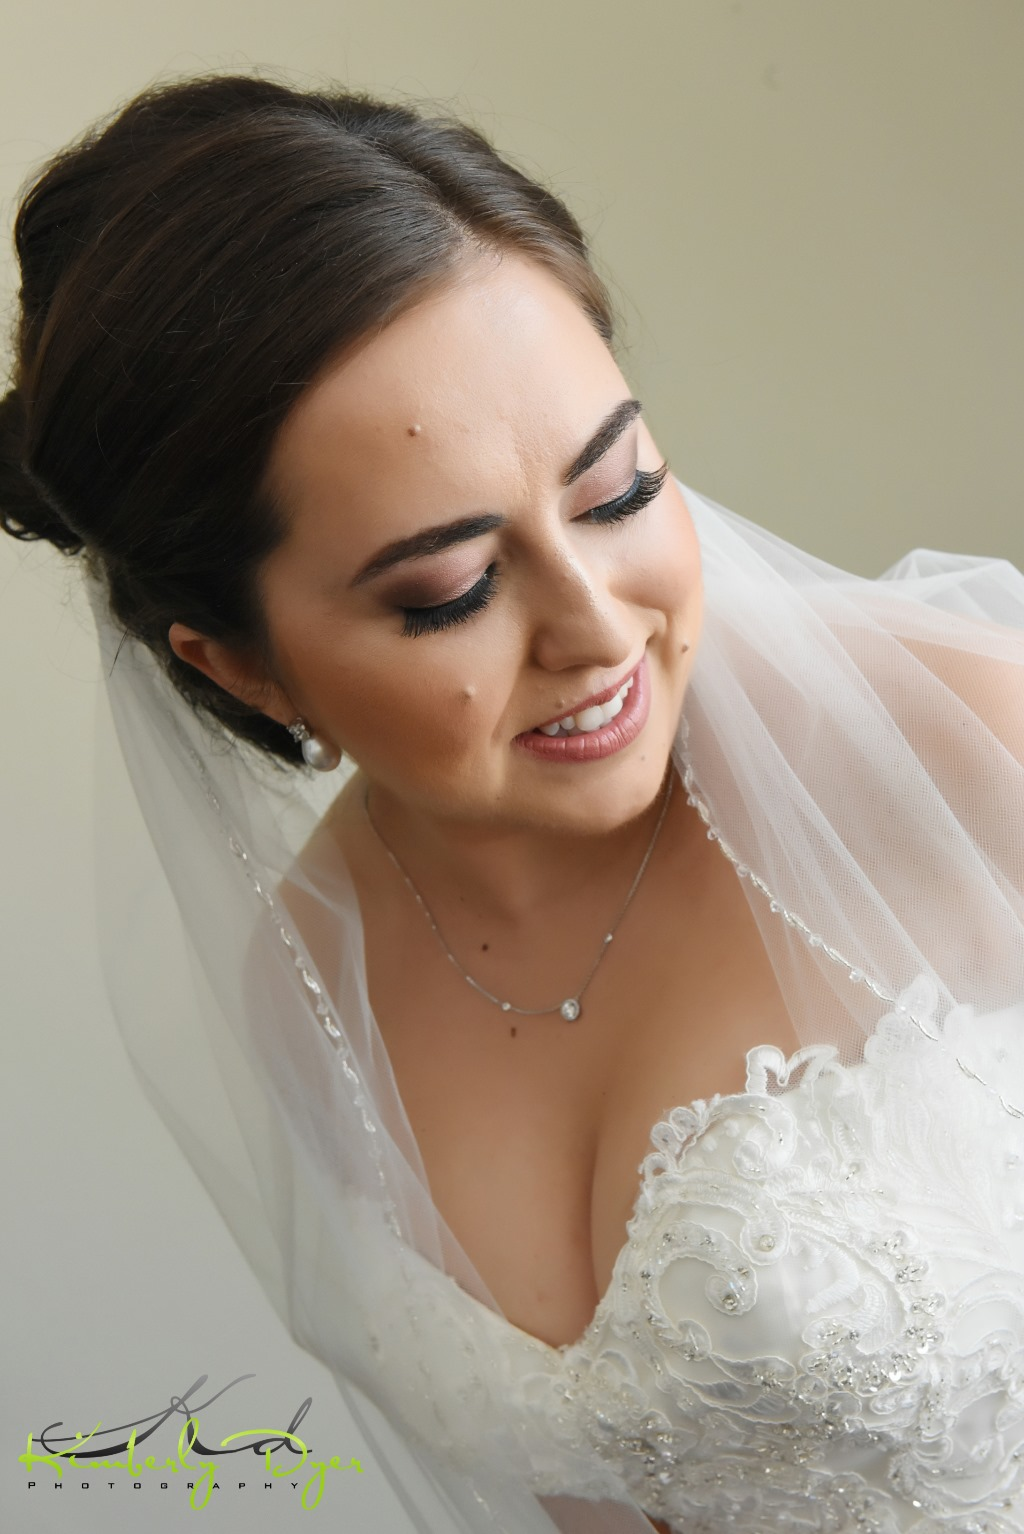 Bridal Hair & Makeup by Les Ciseaux Salon & Spa in St. Armand's Circle